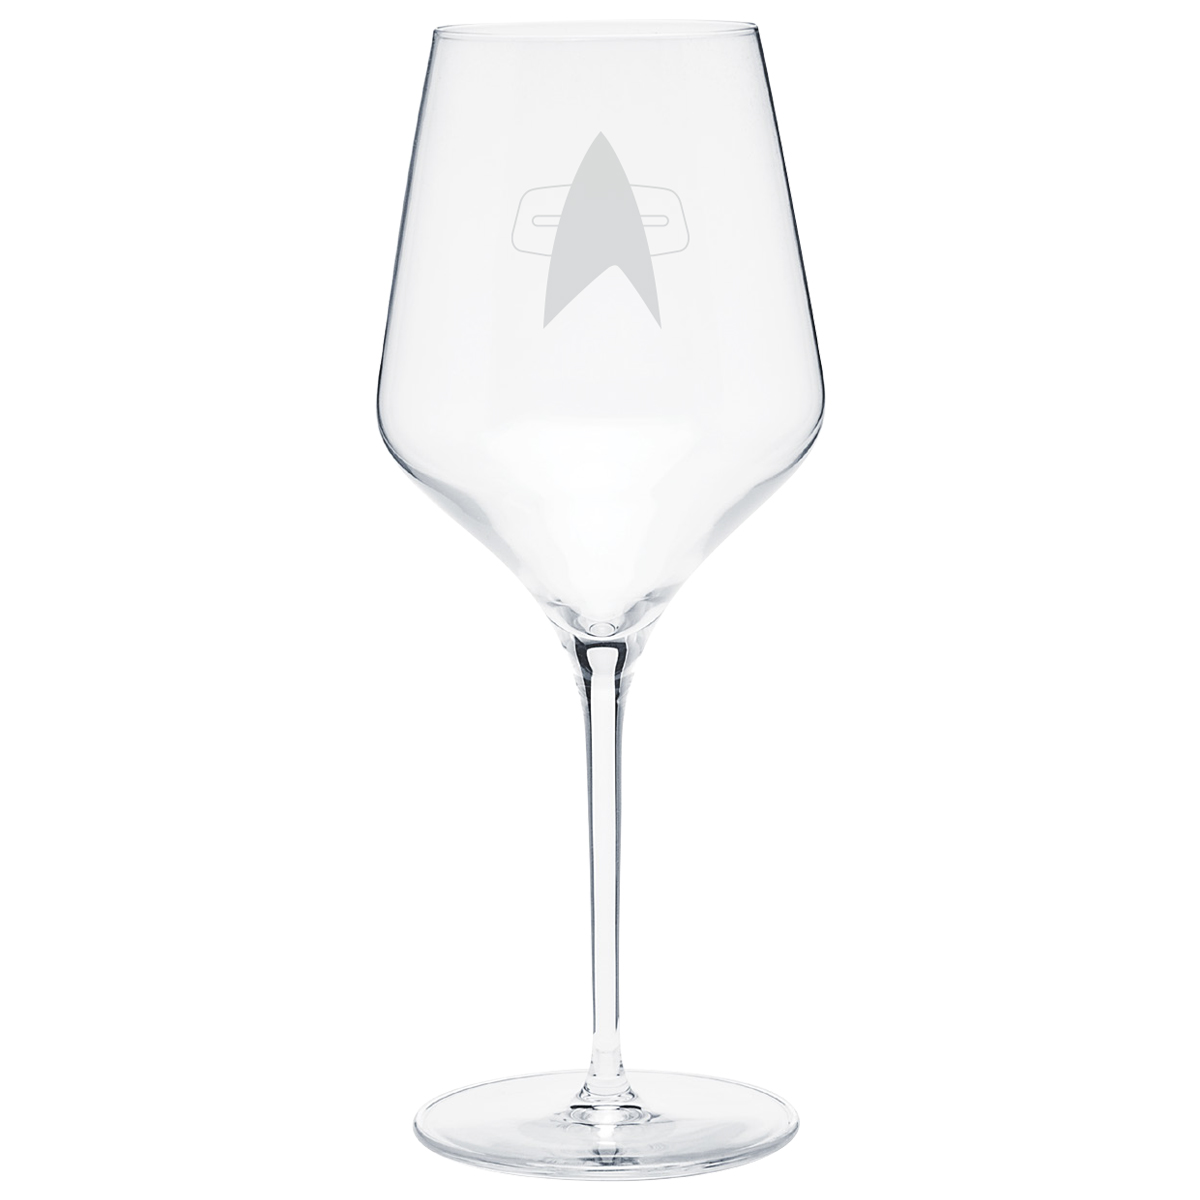 Star Trek Voyager Delta Prism Wine Glass